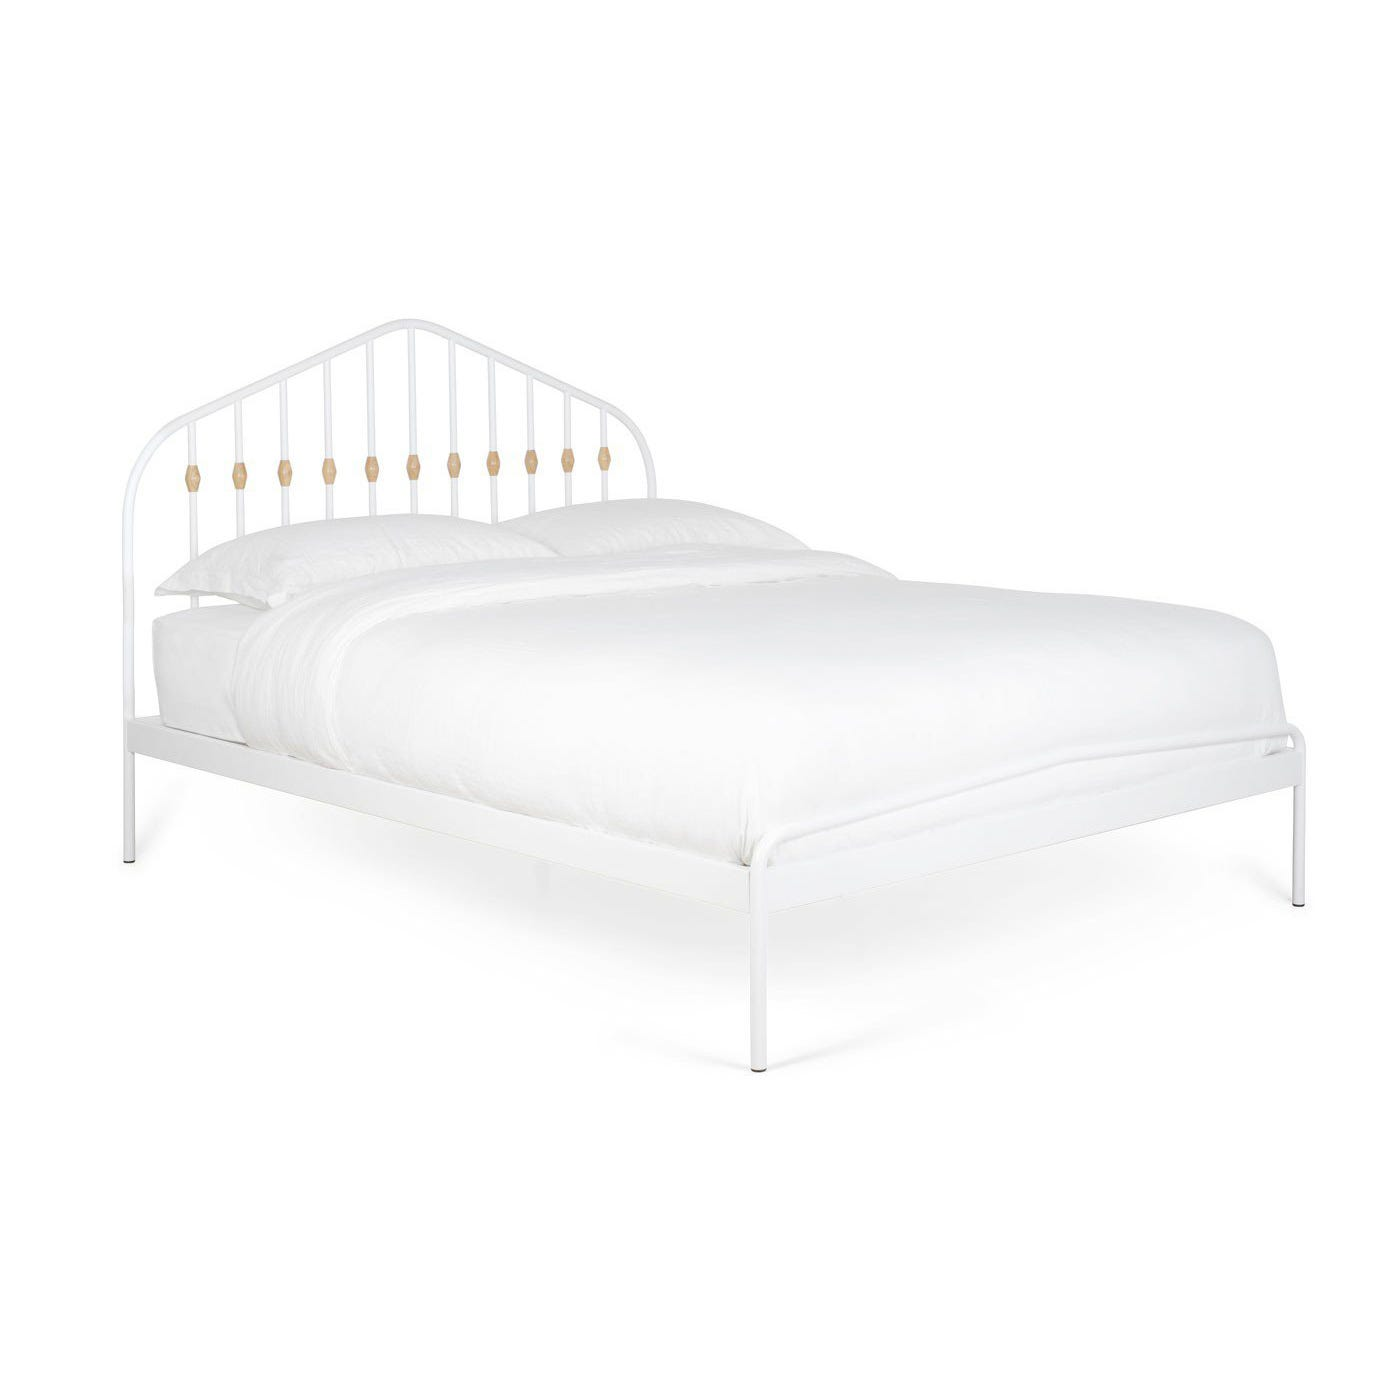 Abacus Bed Single White - Discontinued